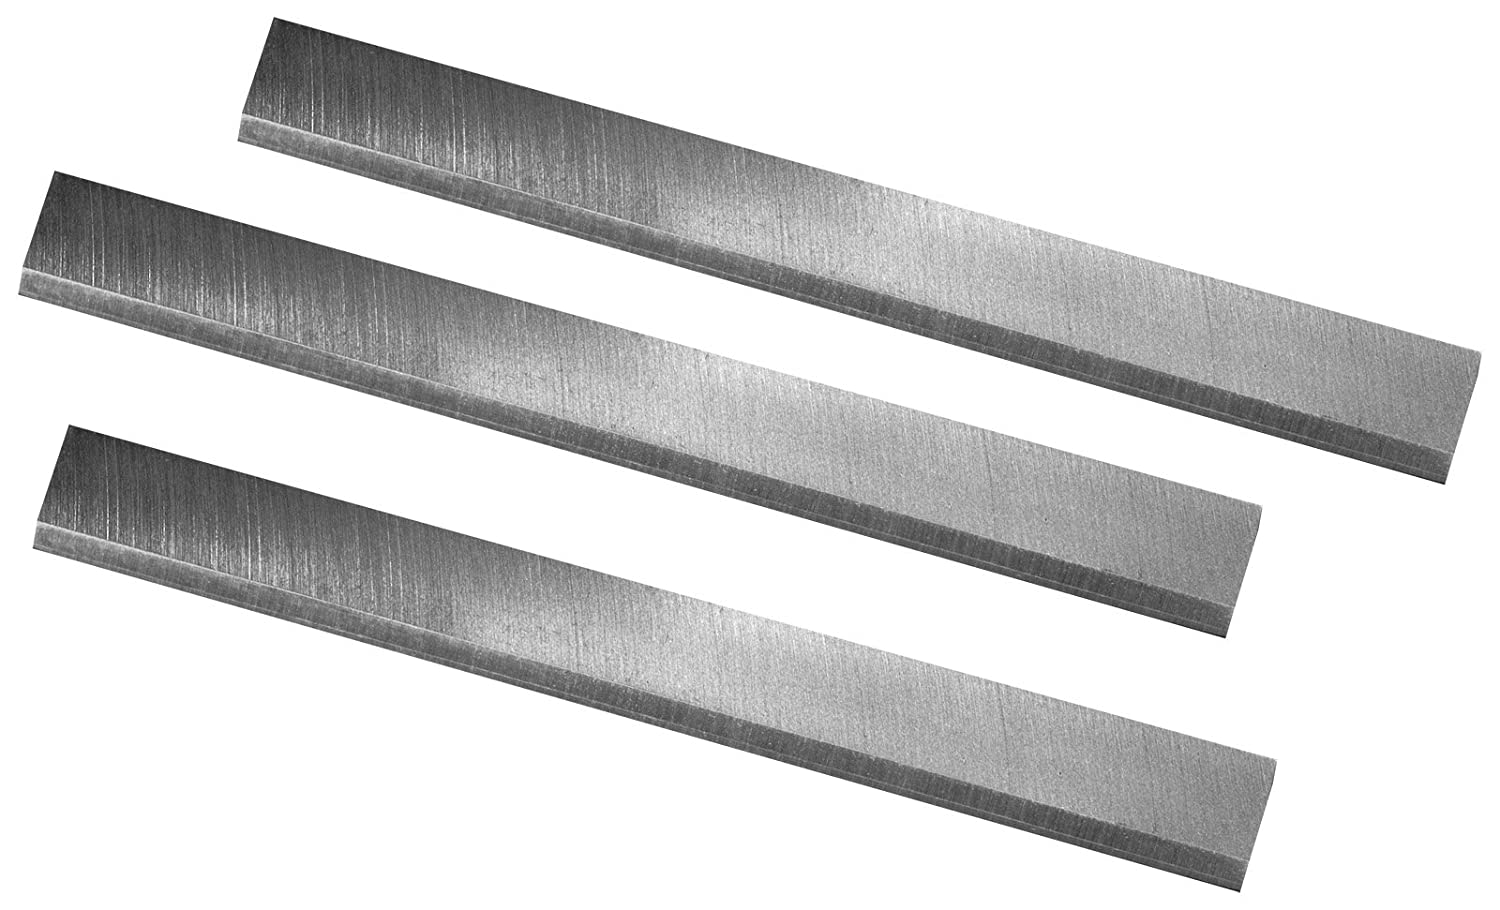 Powertec 148030 6 Inch Hss Jointer Knives For Delta  195 Set Of 3 Amazon Com